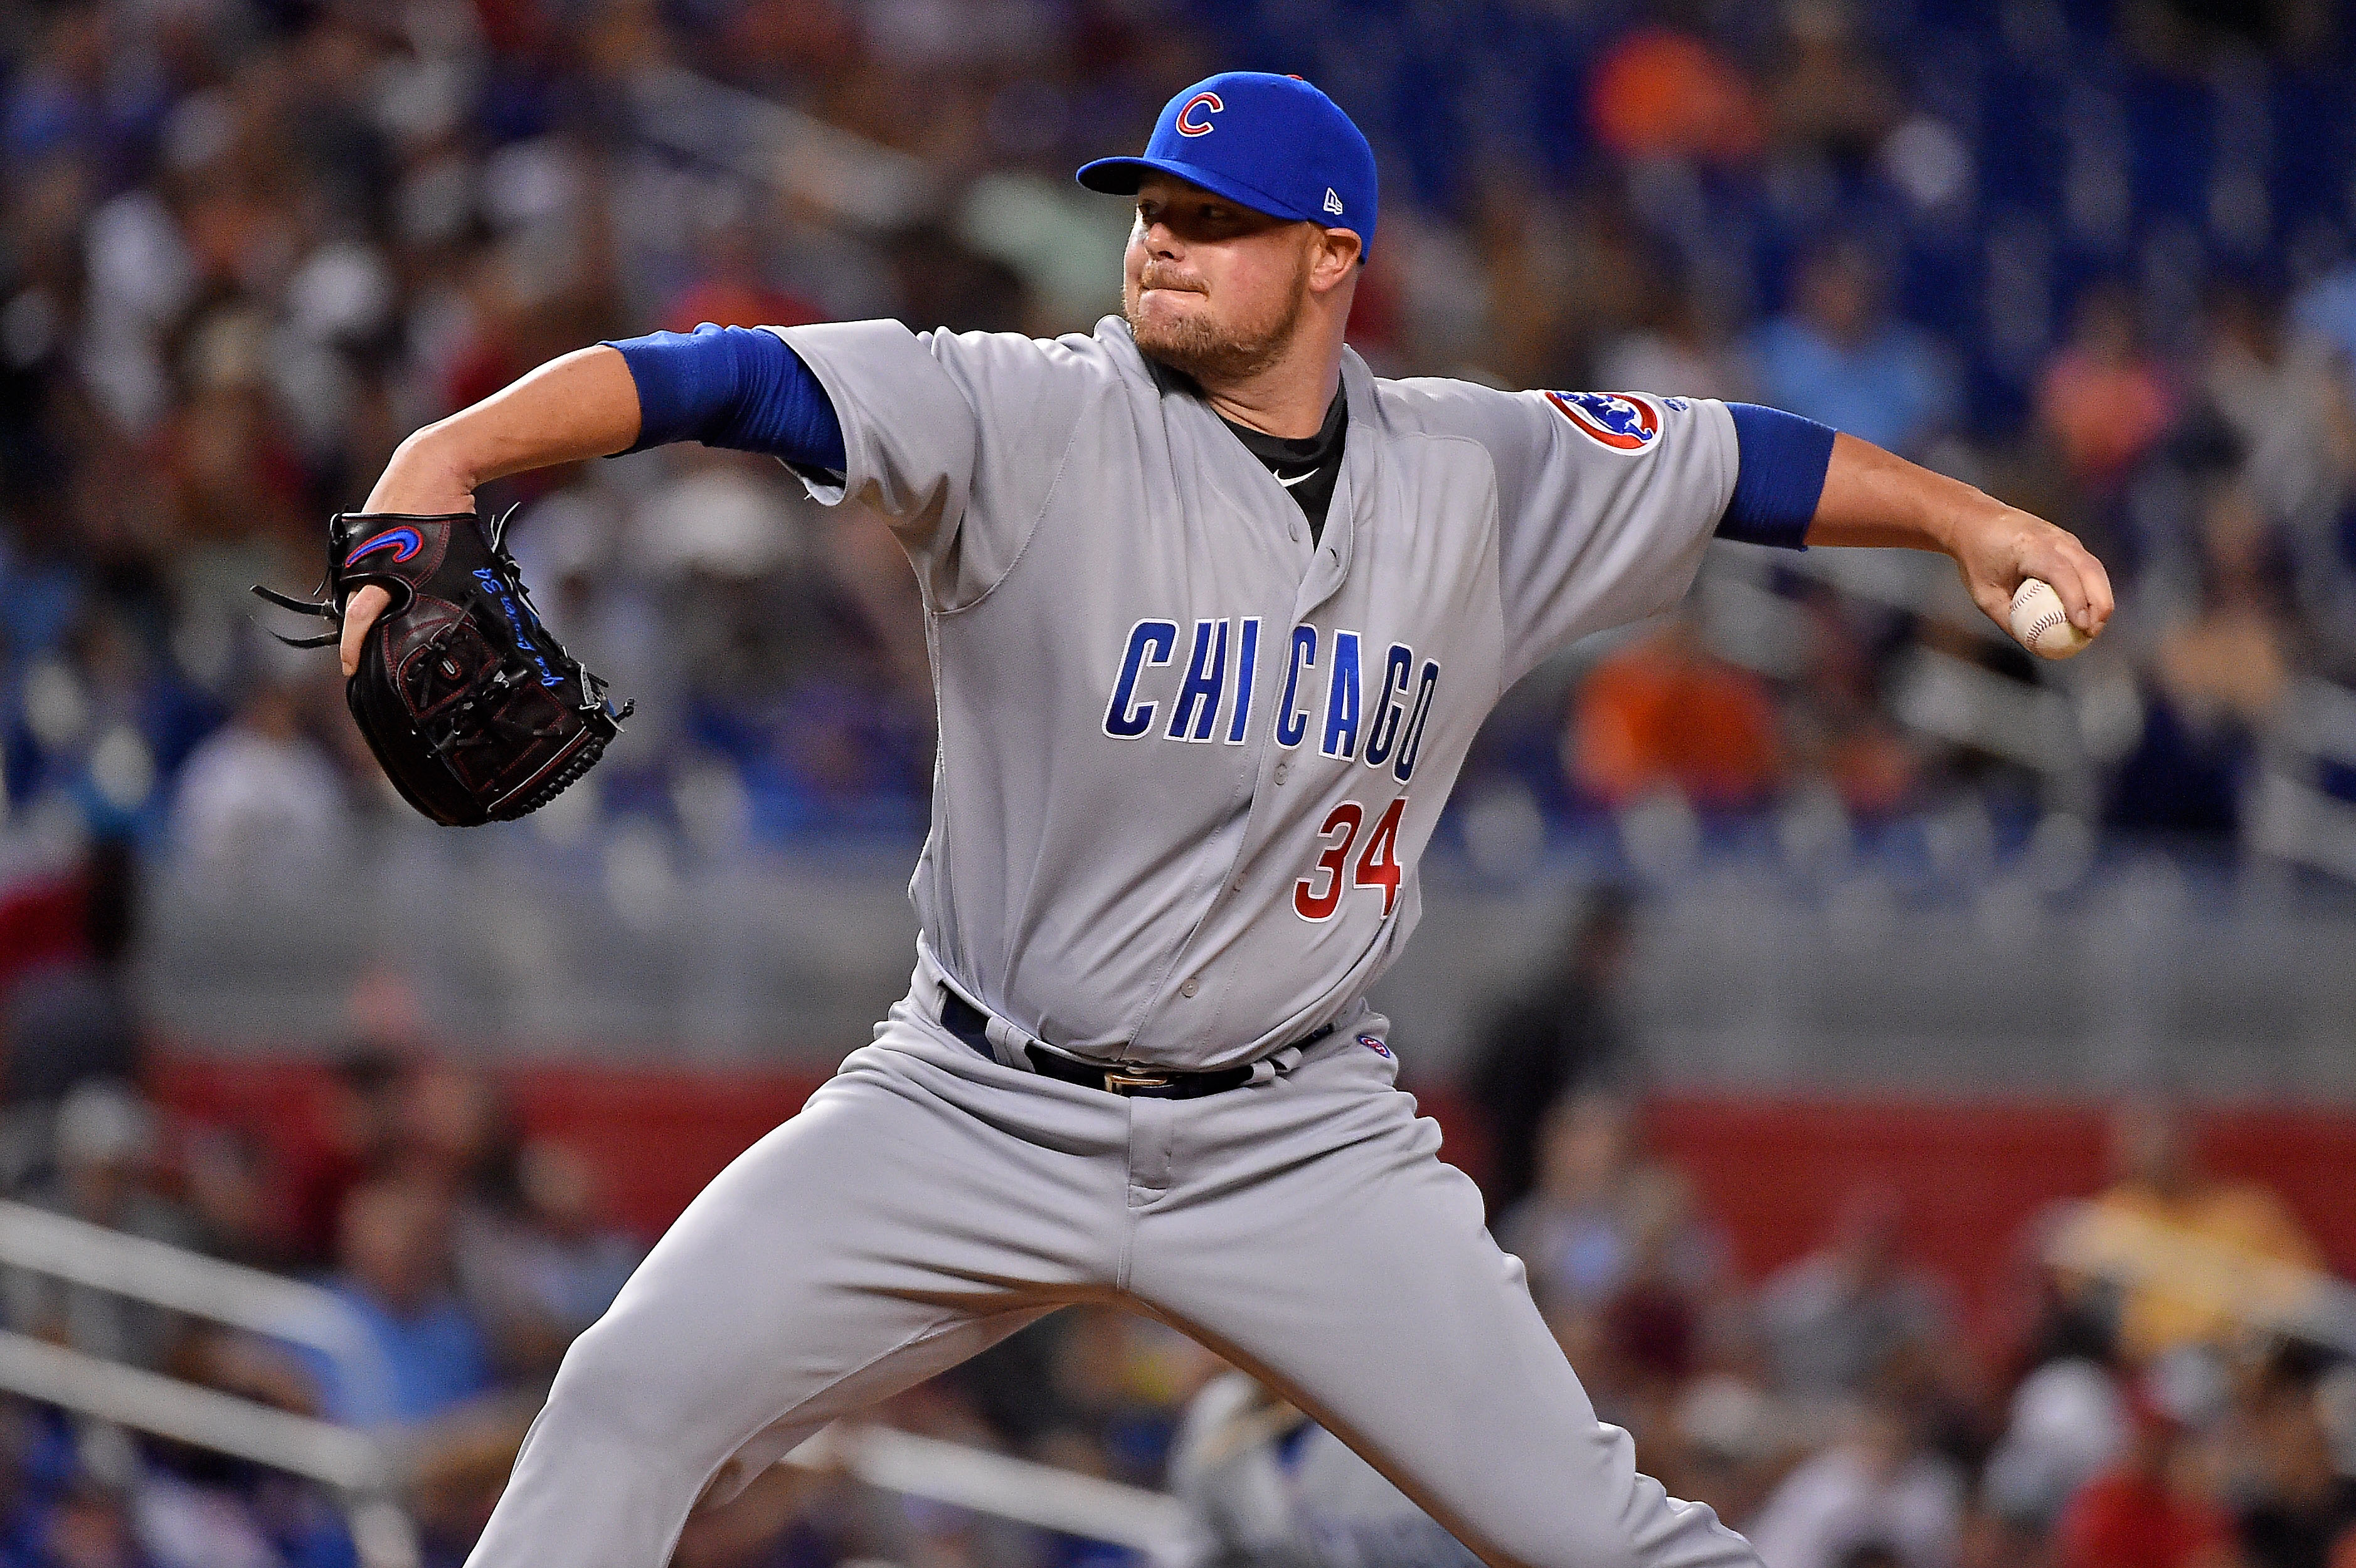 Chicago Cubs: Jon Lester settles in, offense comes through ...